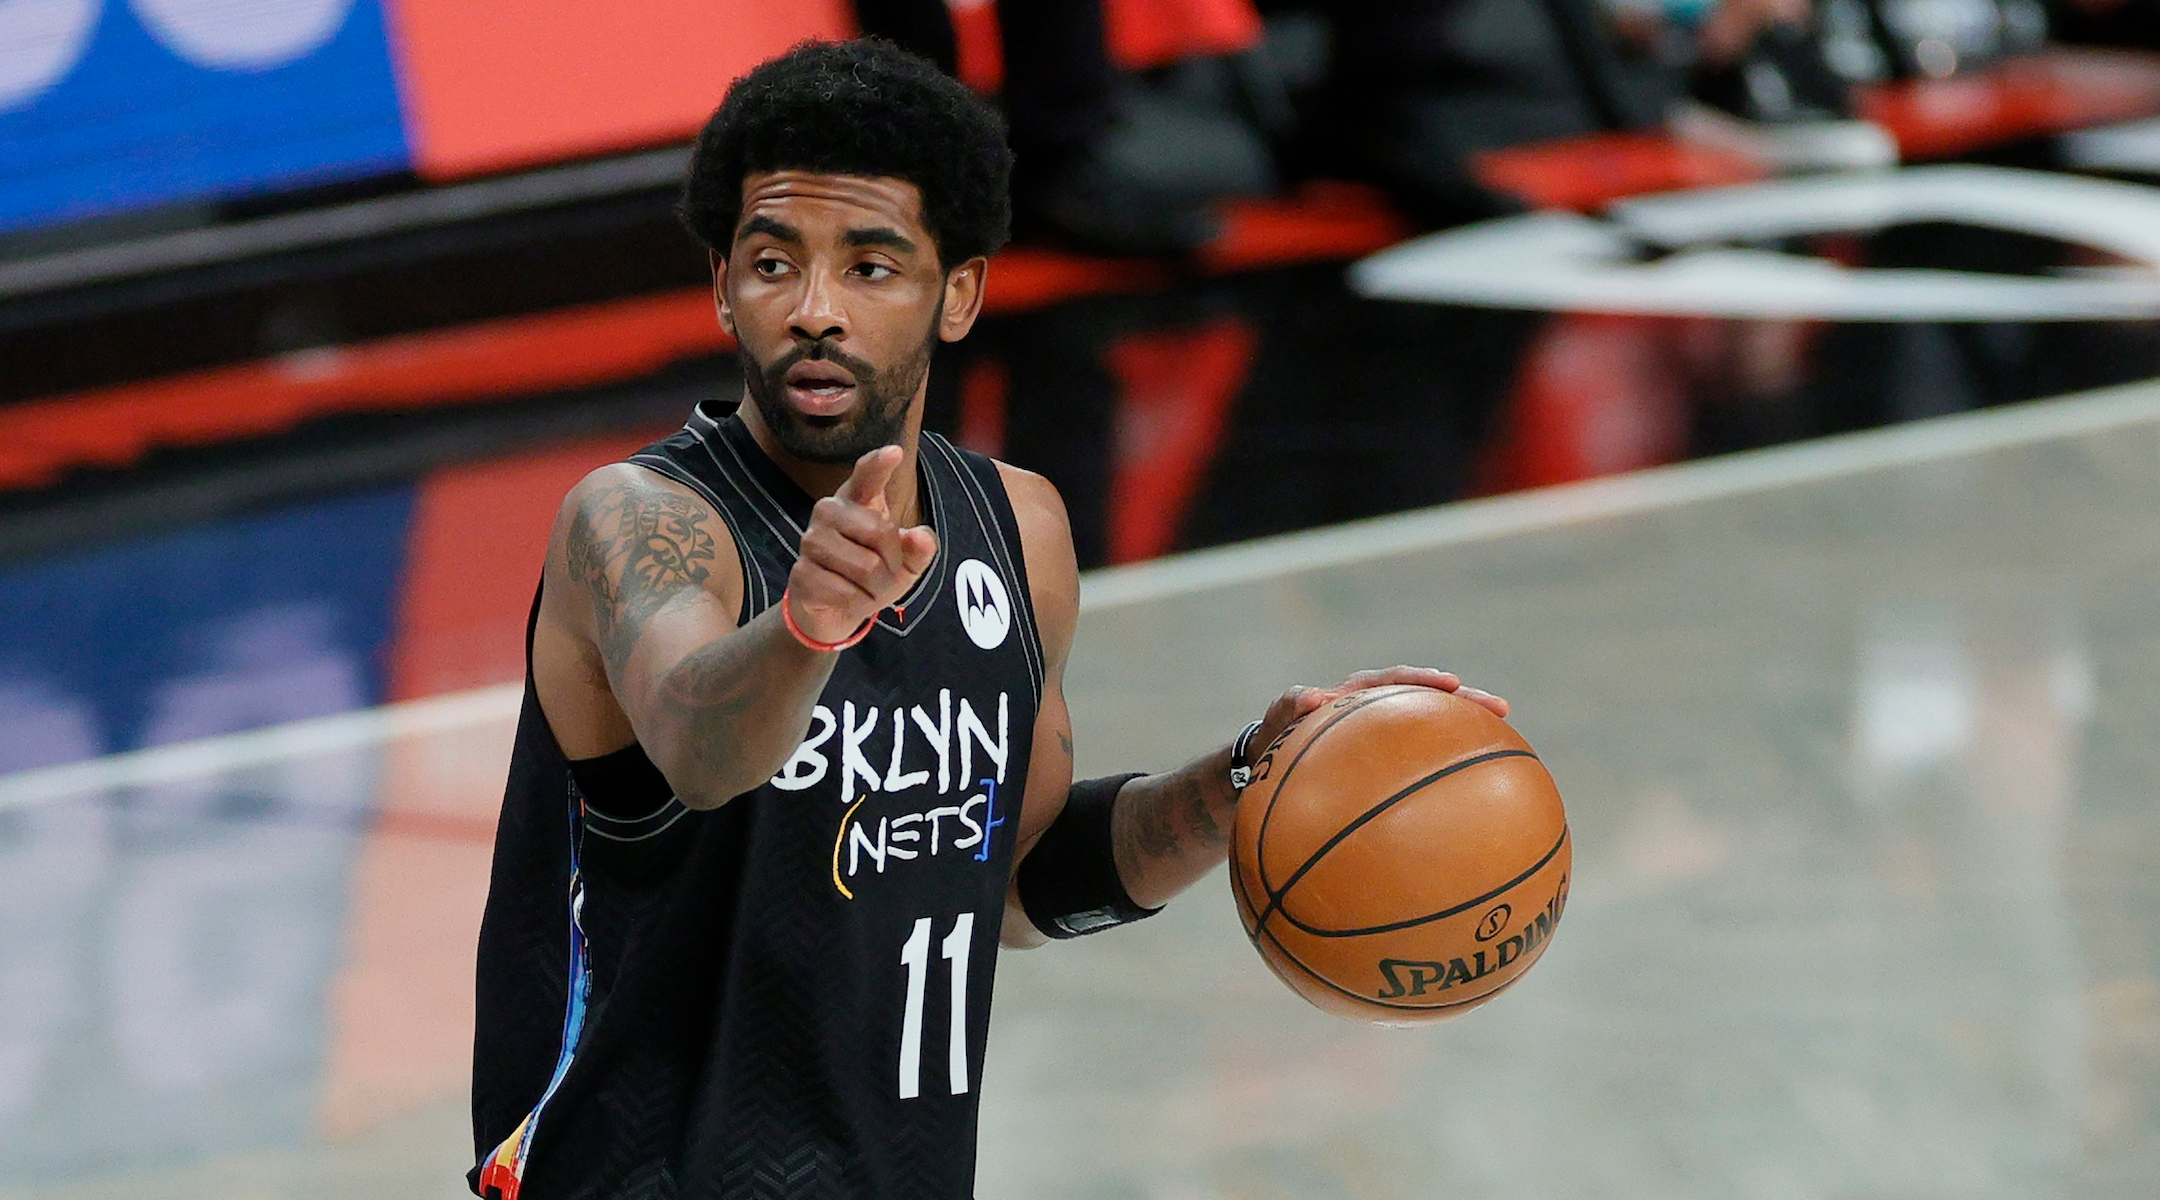 Nets star Kyrie Irving says he's more focused on the Israel-Gaza conflict than basketball right...